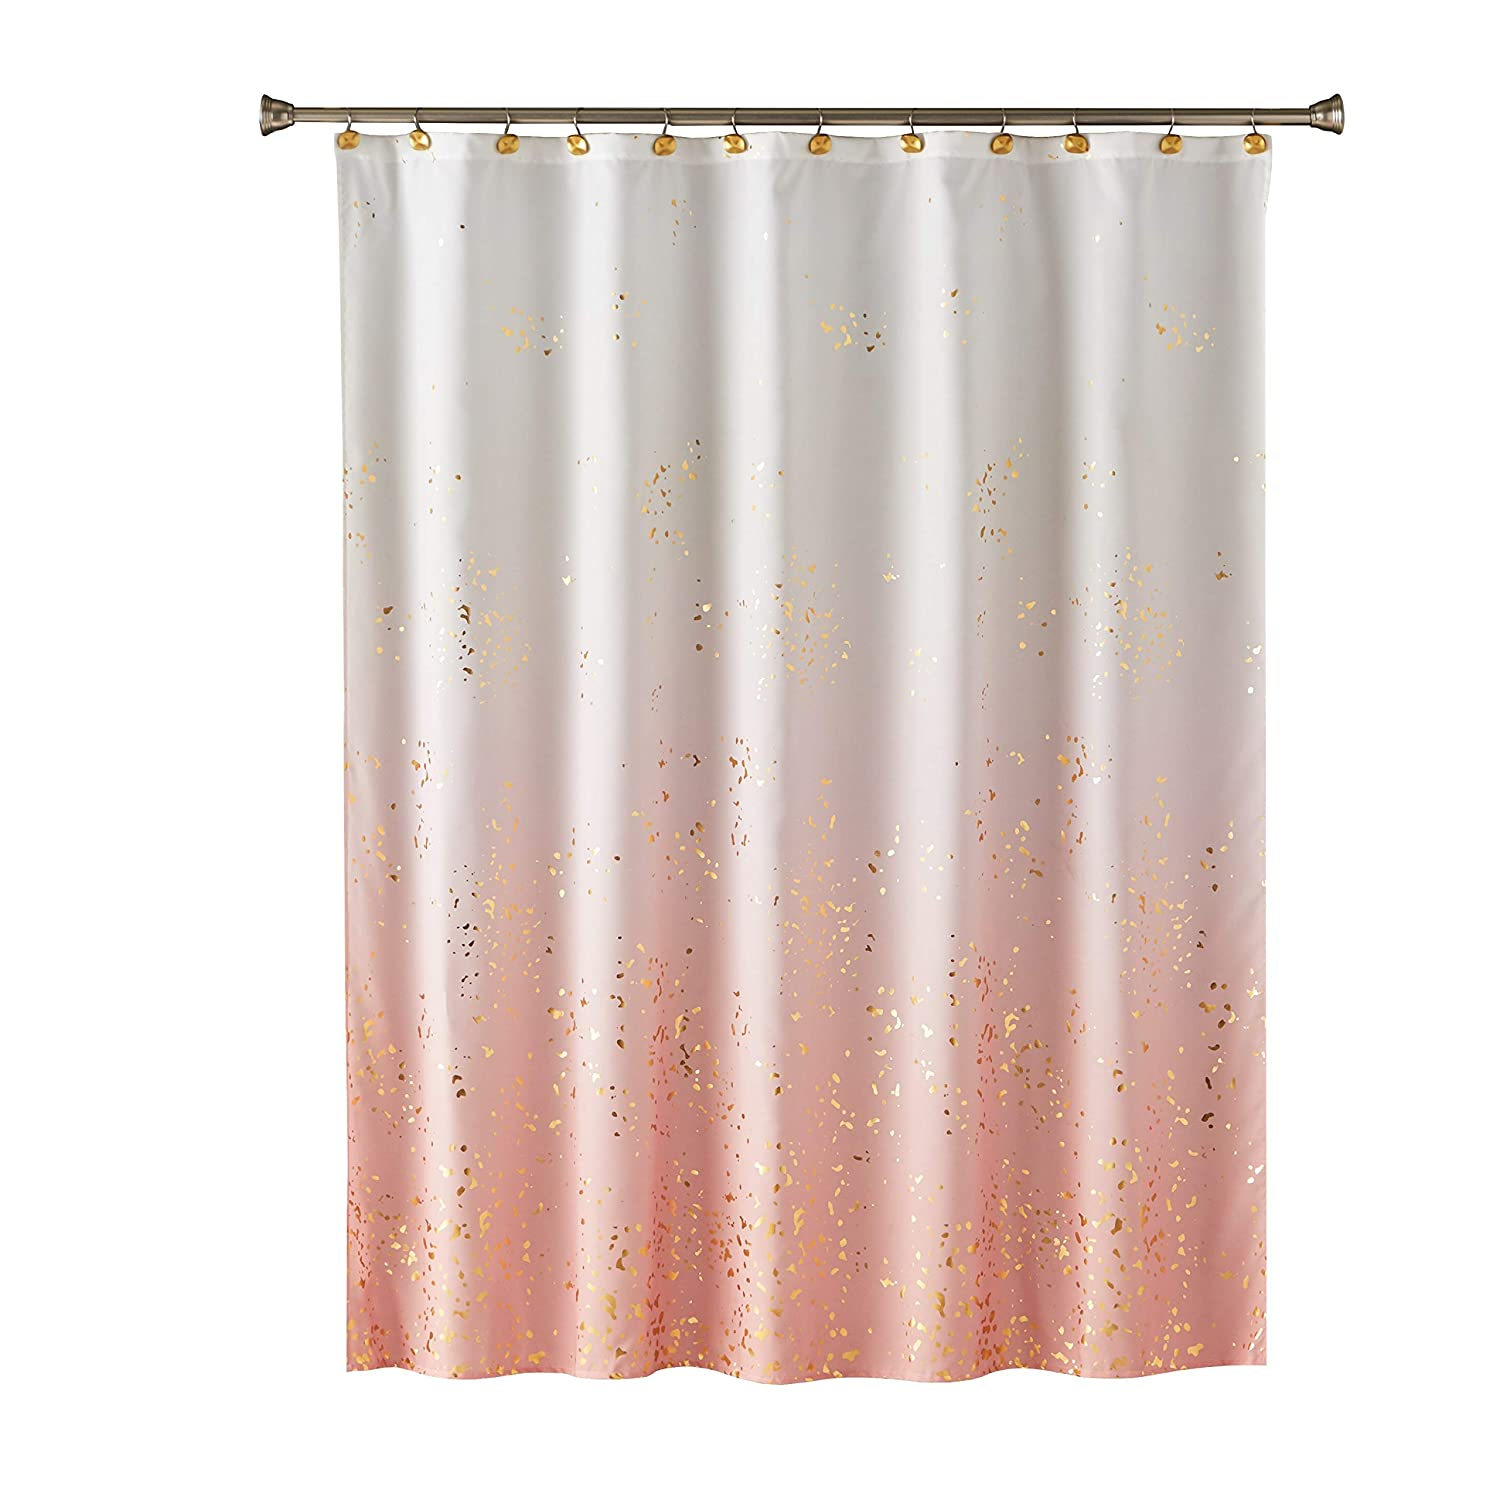 SKL Home by Saturday Knight Ltd. Splatter Fabric Shower Curtain, Pink